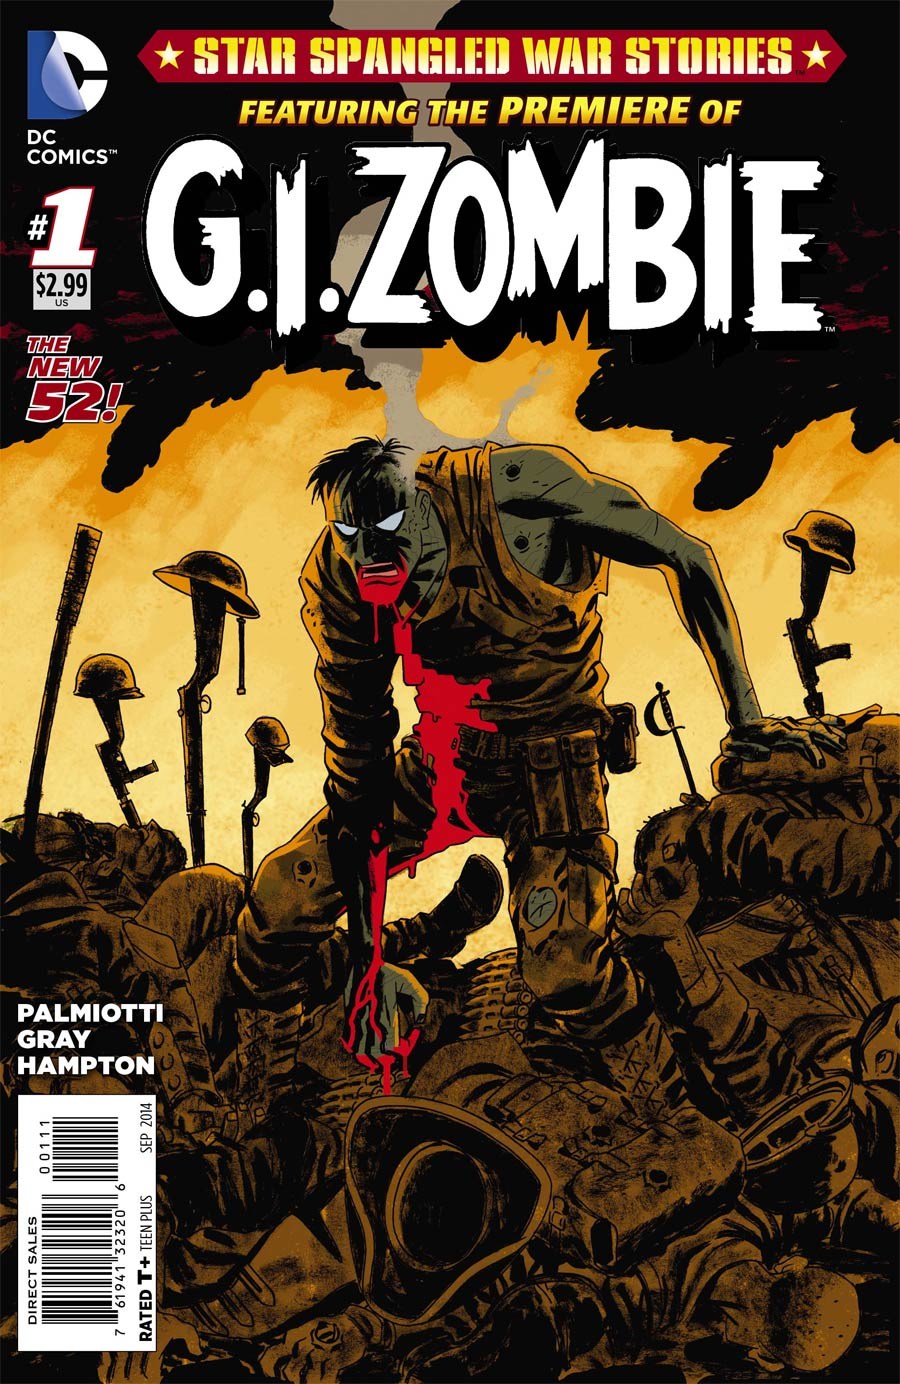 Star-Spangled War Stories Featuring GI Zombie #1 Cover A Regular Howard Porter Cover